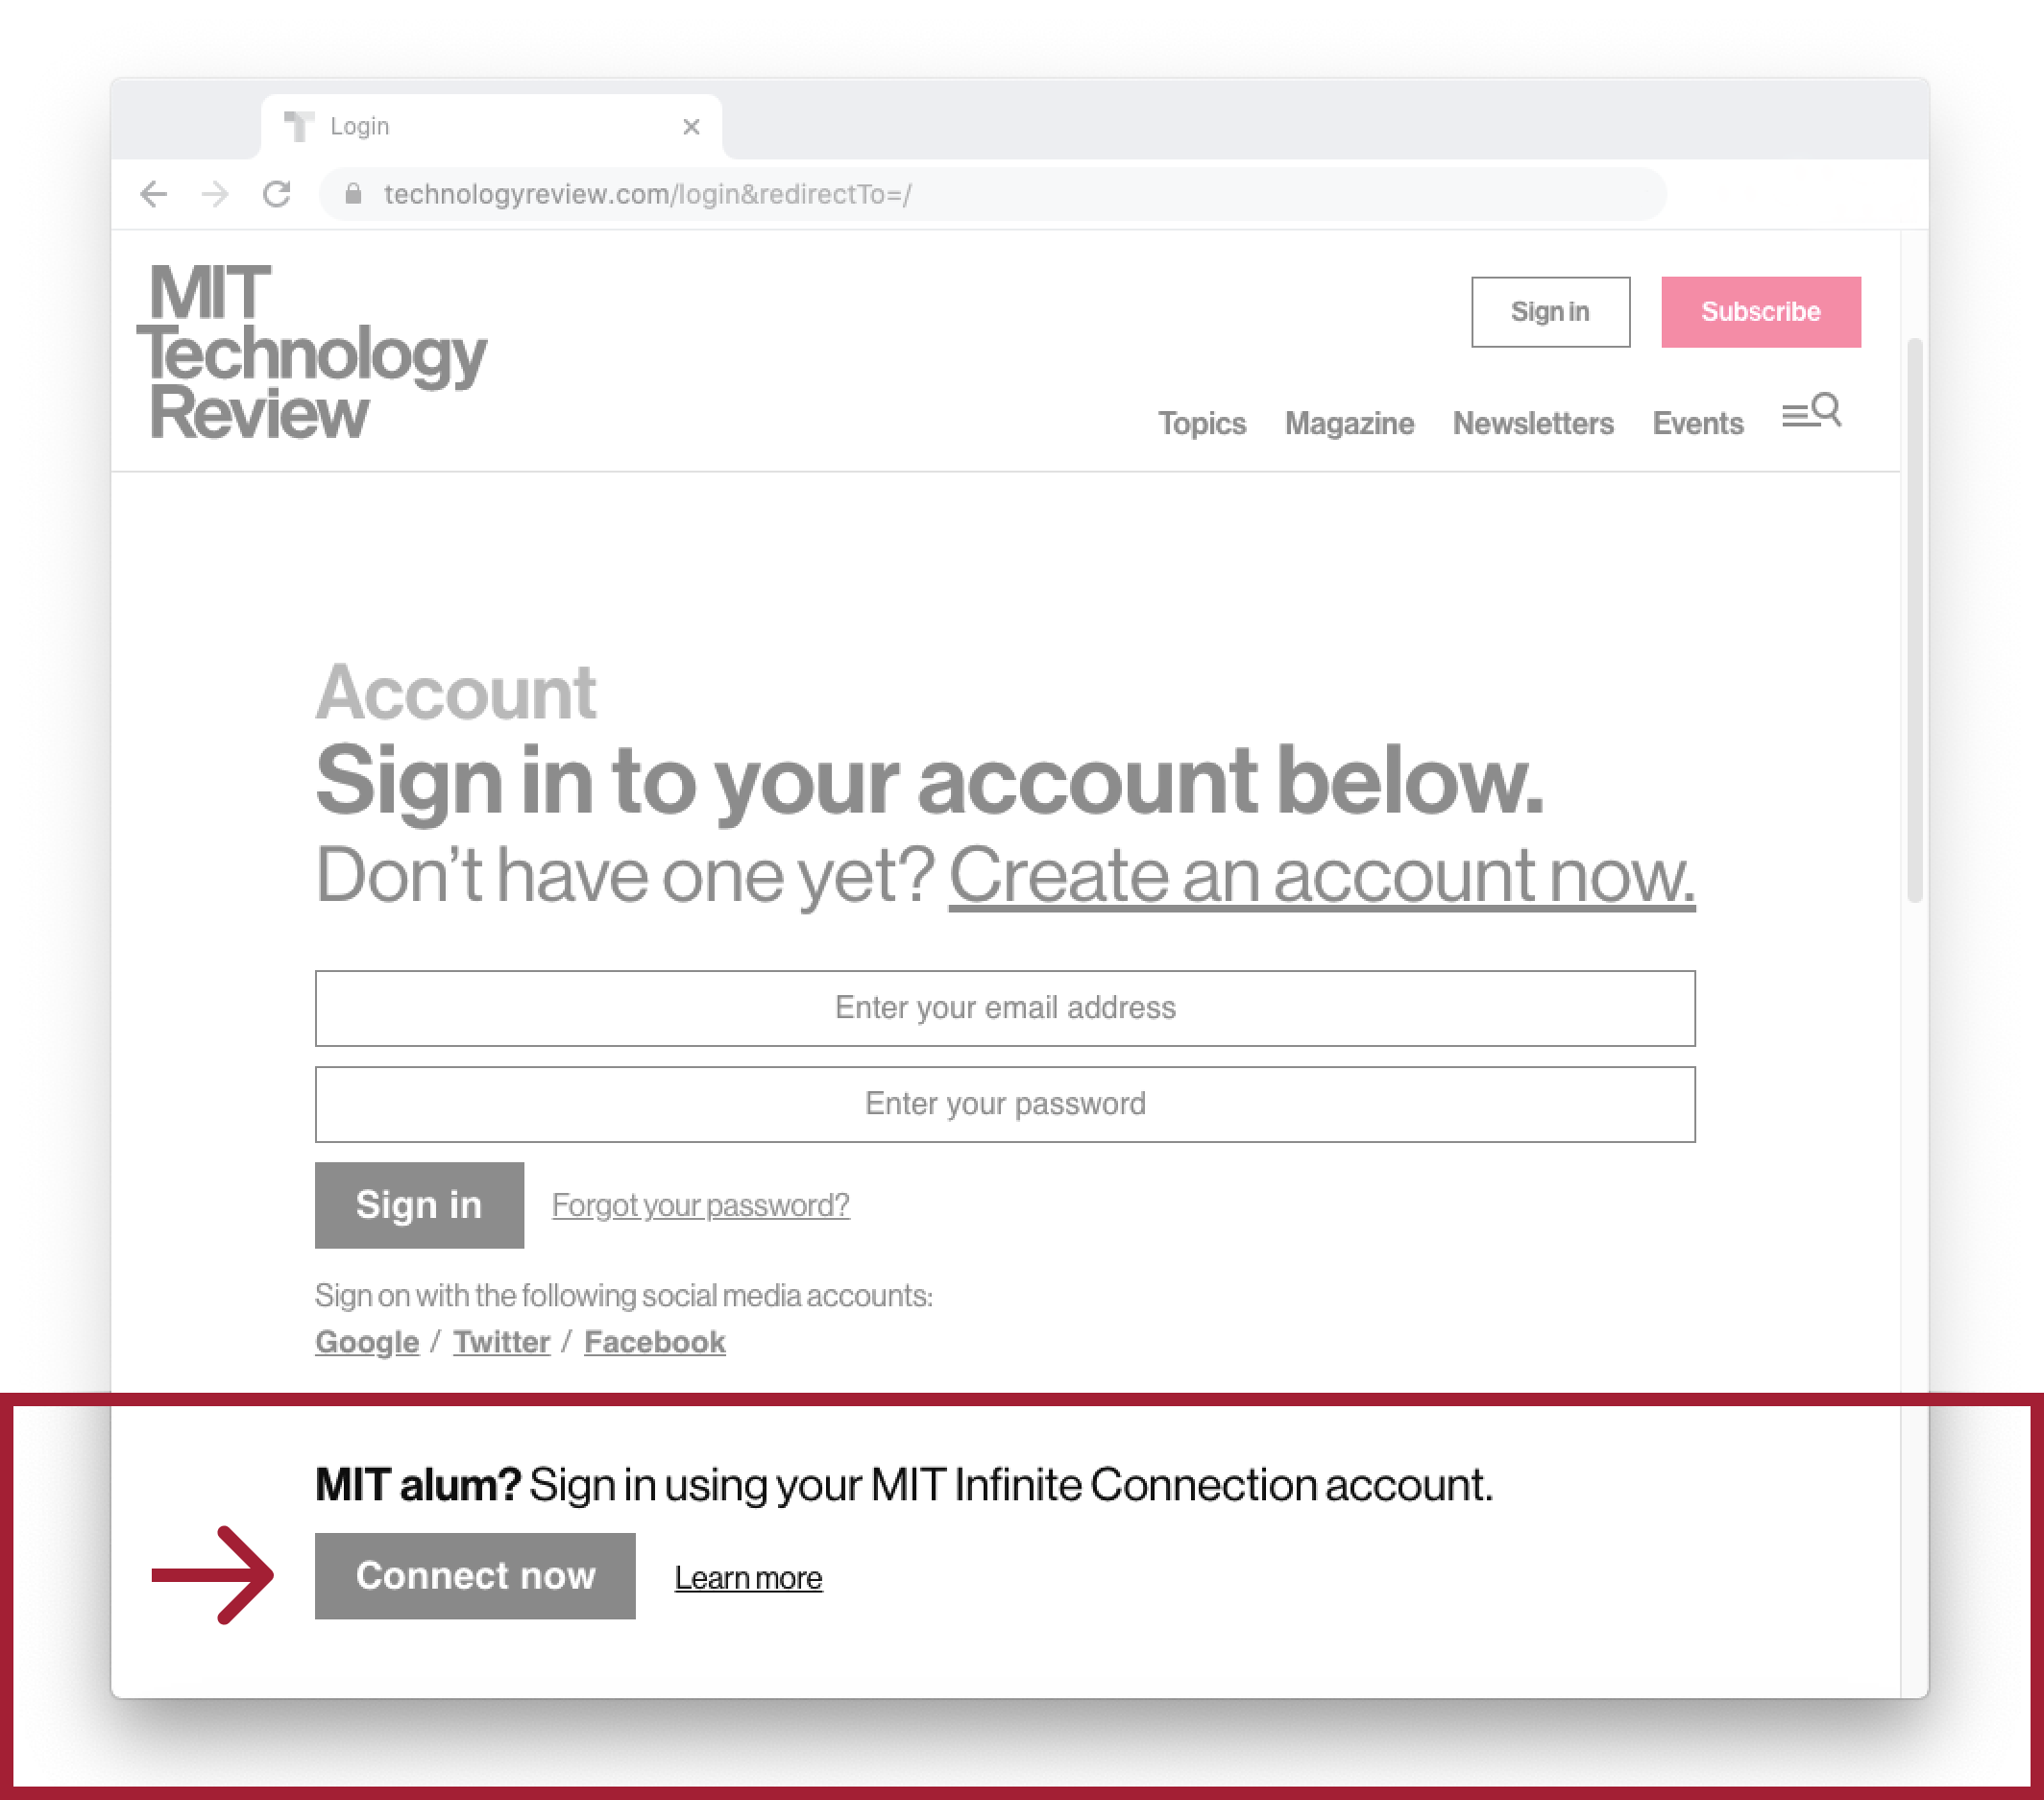 """After selecting your preferred subscription format, visit the MIT Technology Review sign in page, click the grey """"Connect now"""" button, and sign in using your MIT Infinite Connection credentials."""